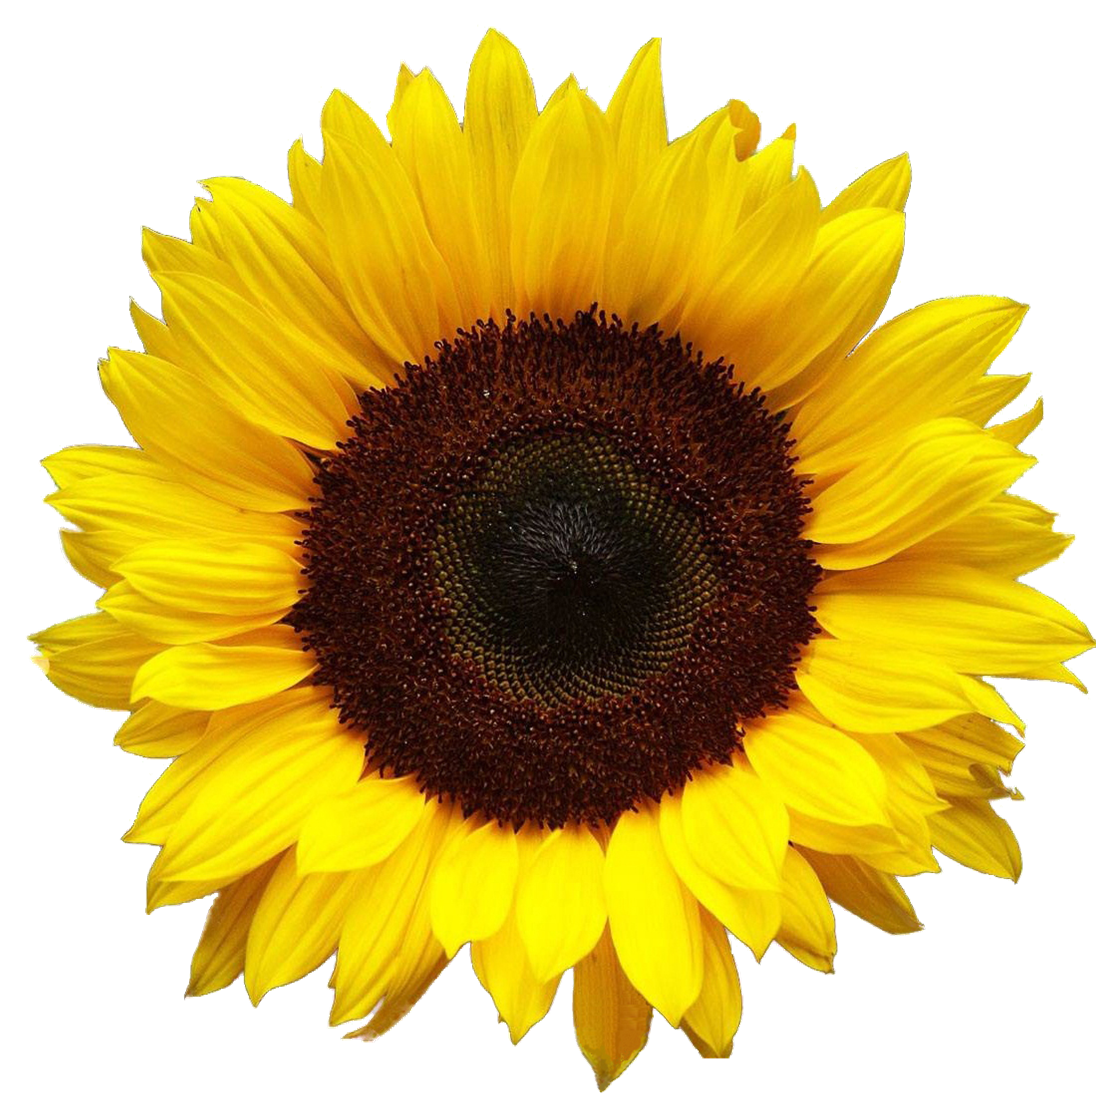 Hd Png Background Transparent Sunflower #28732